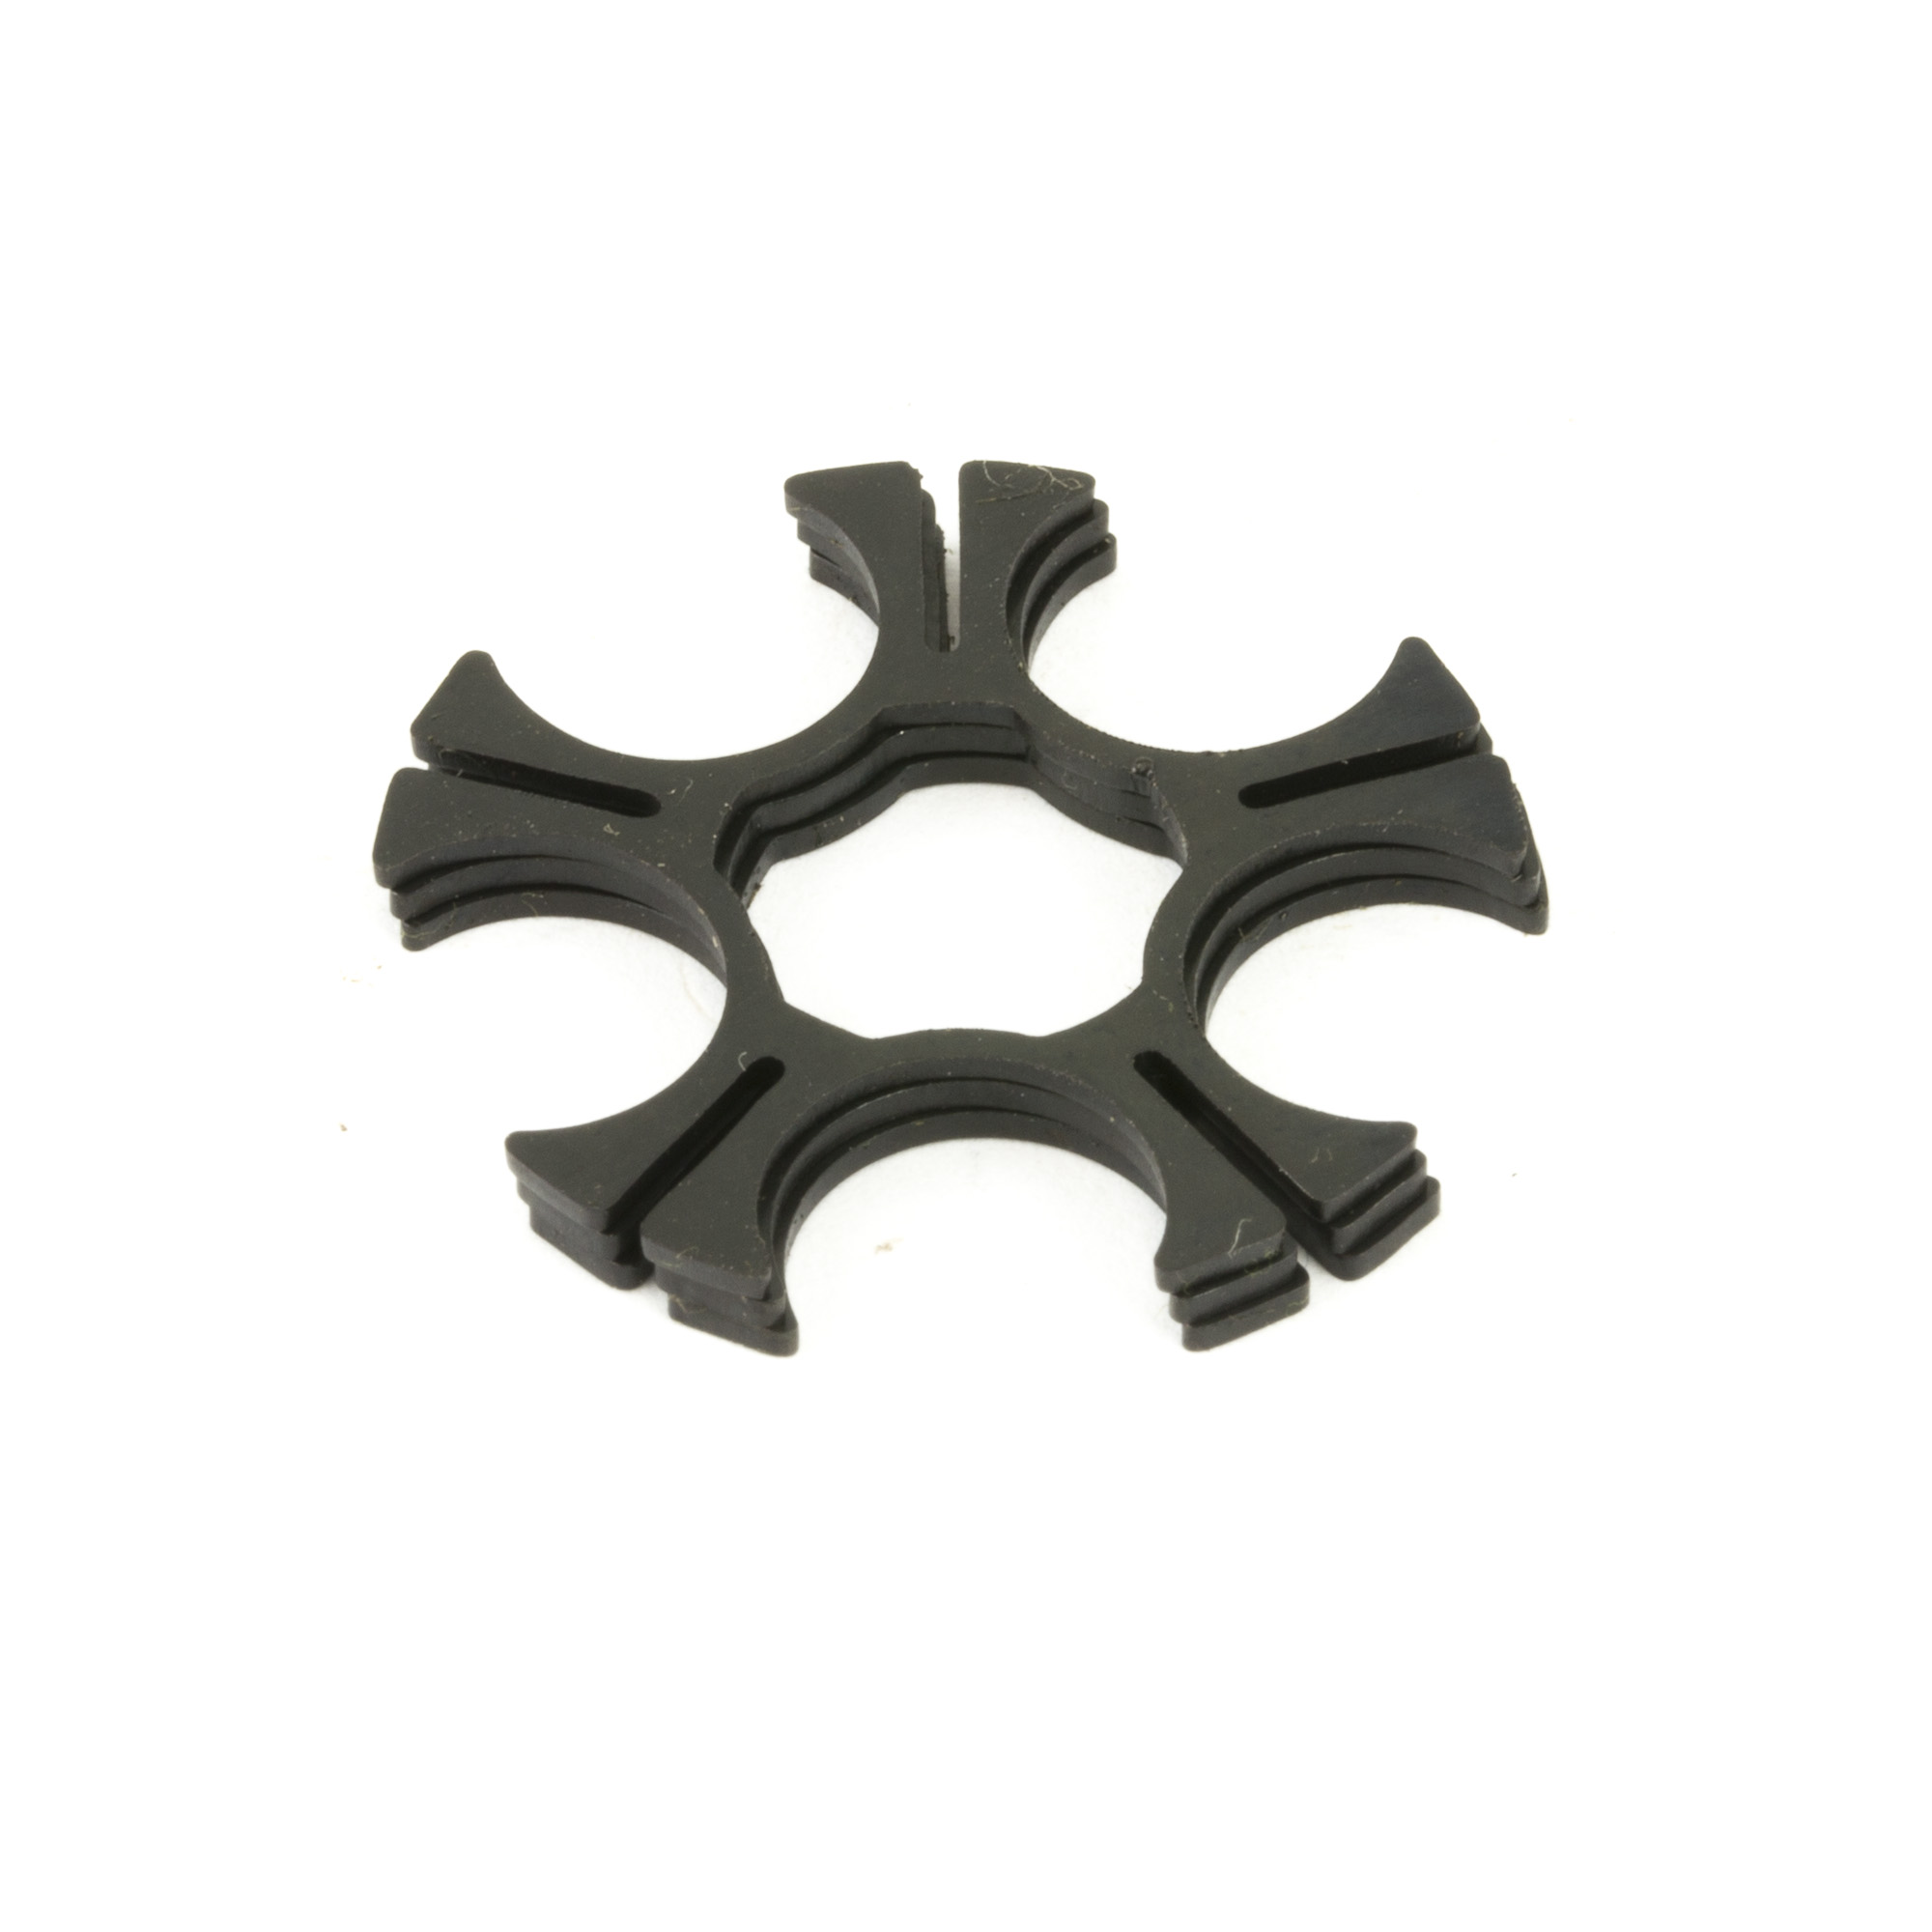 These full moon clips are made from stainless steel and function as a speed loader. They feature an optimized charge hole design for positive ejection over a wide range of ammunition. Ruger full moon clips act as a speed loader for quick reloads and the design allows for loading and unloading without the use of a moon clip tool.